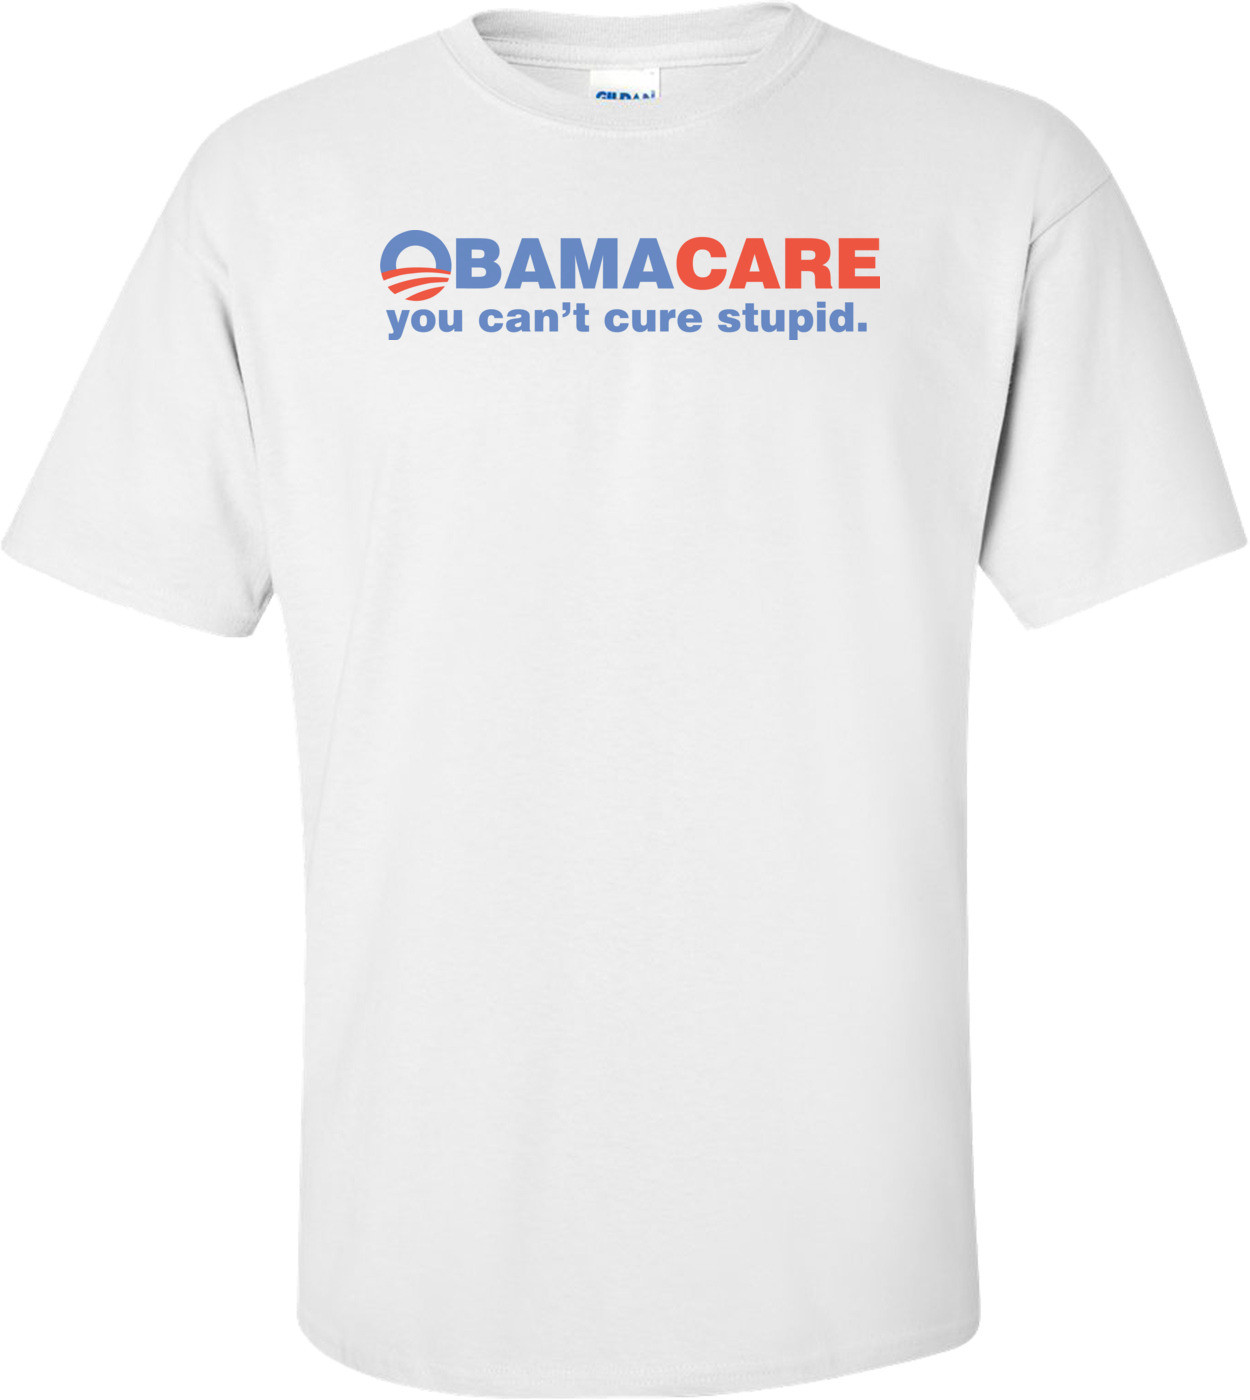 Obamacare You Can't Cure Stupid - Anti-obama Shirt